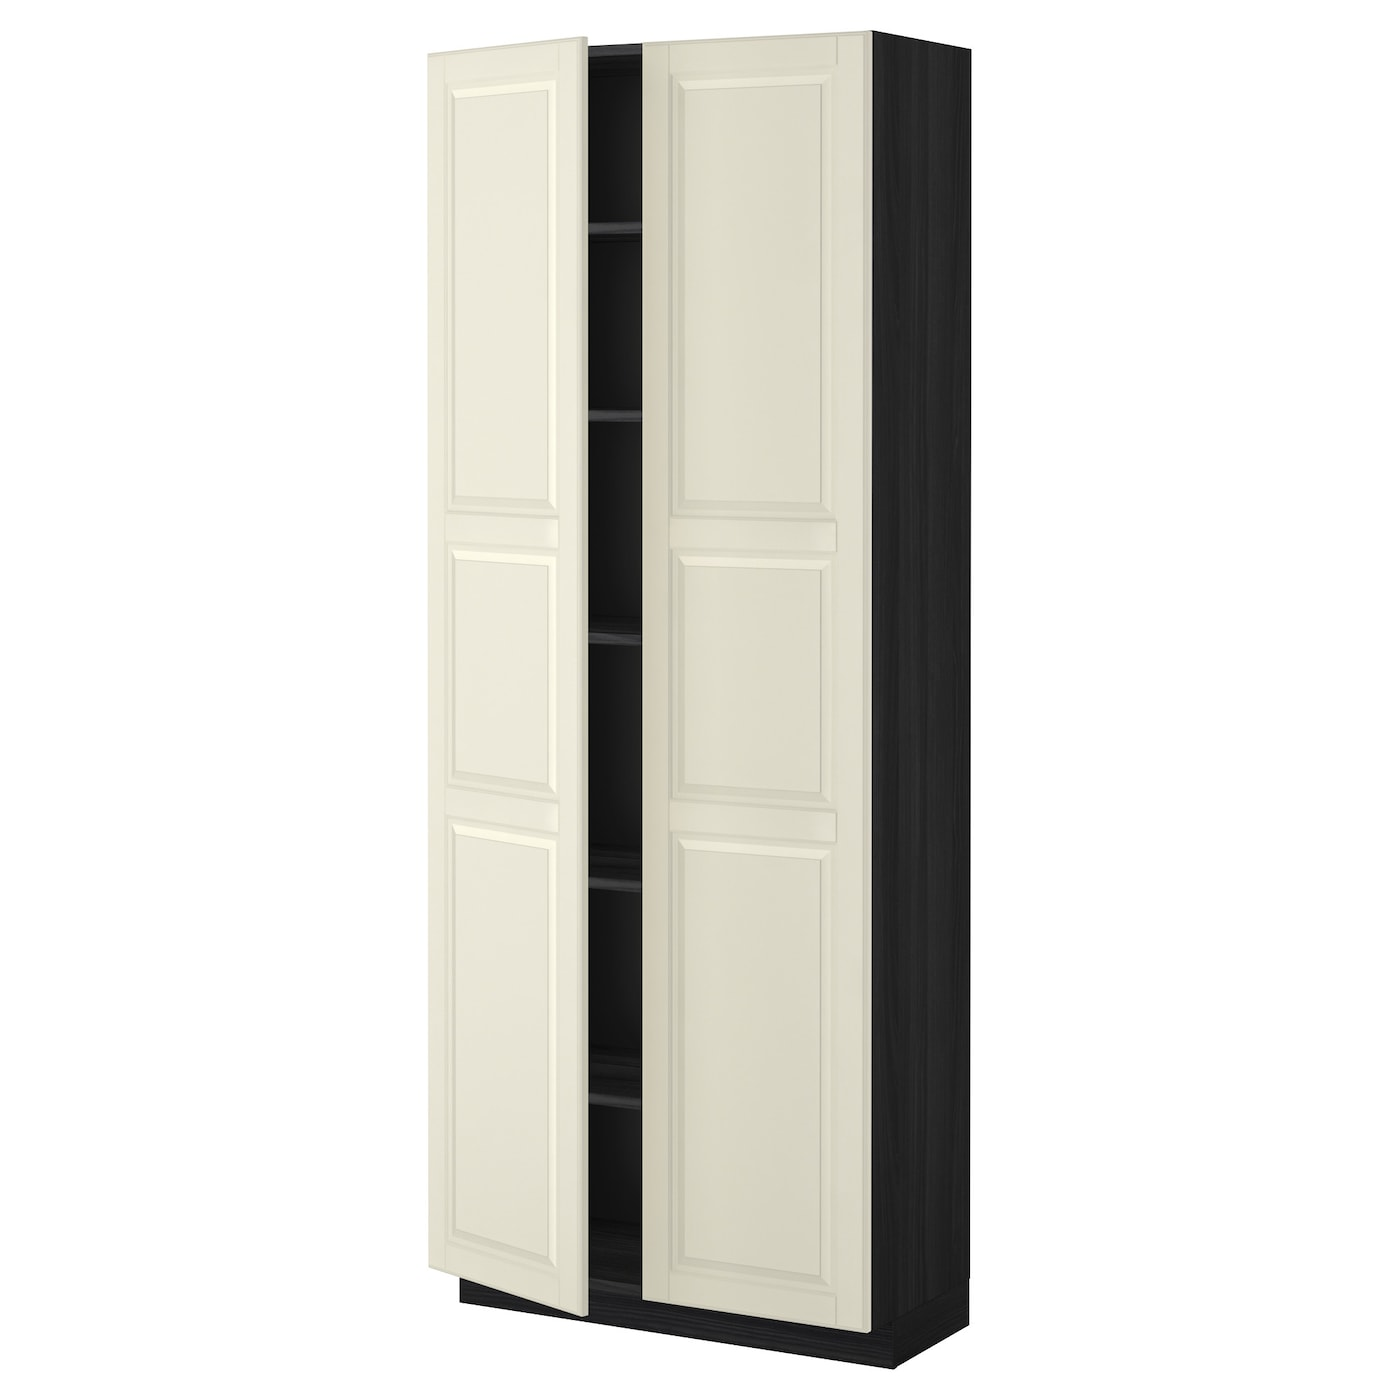 Metod high cabinet with shelves black bodbyn off white for Off the shelf cabinets